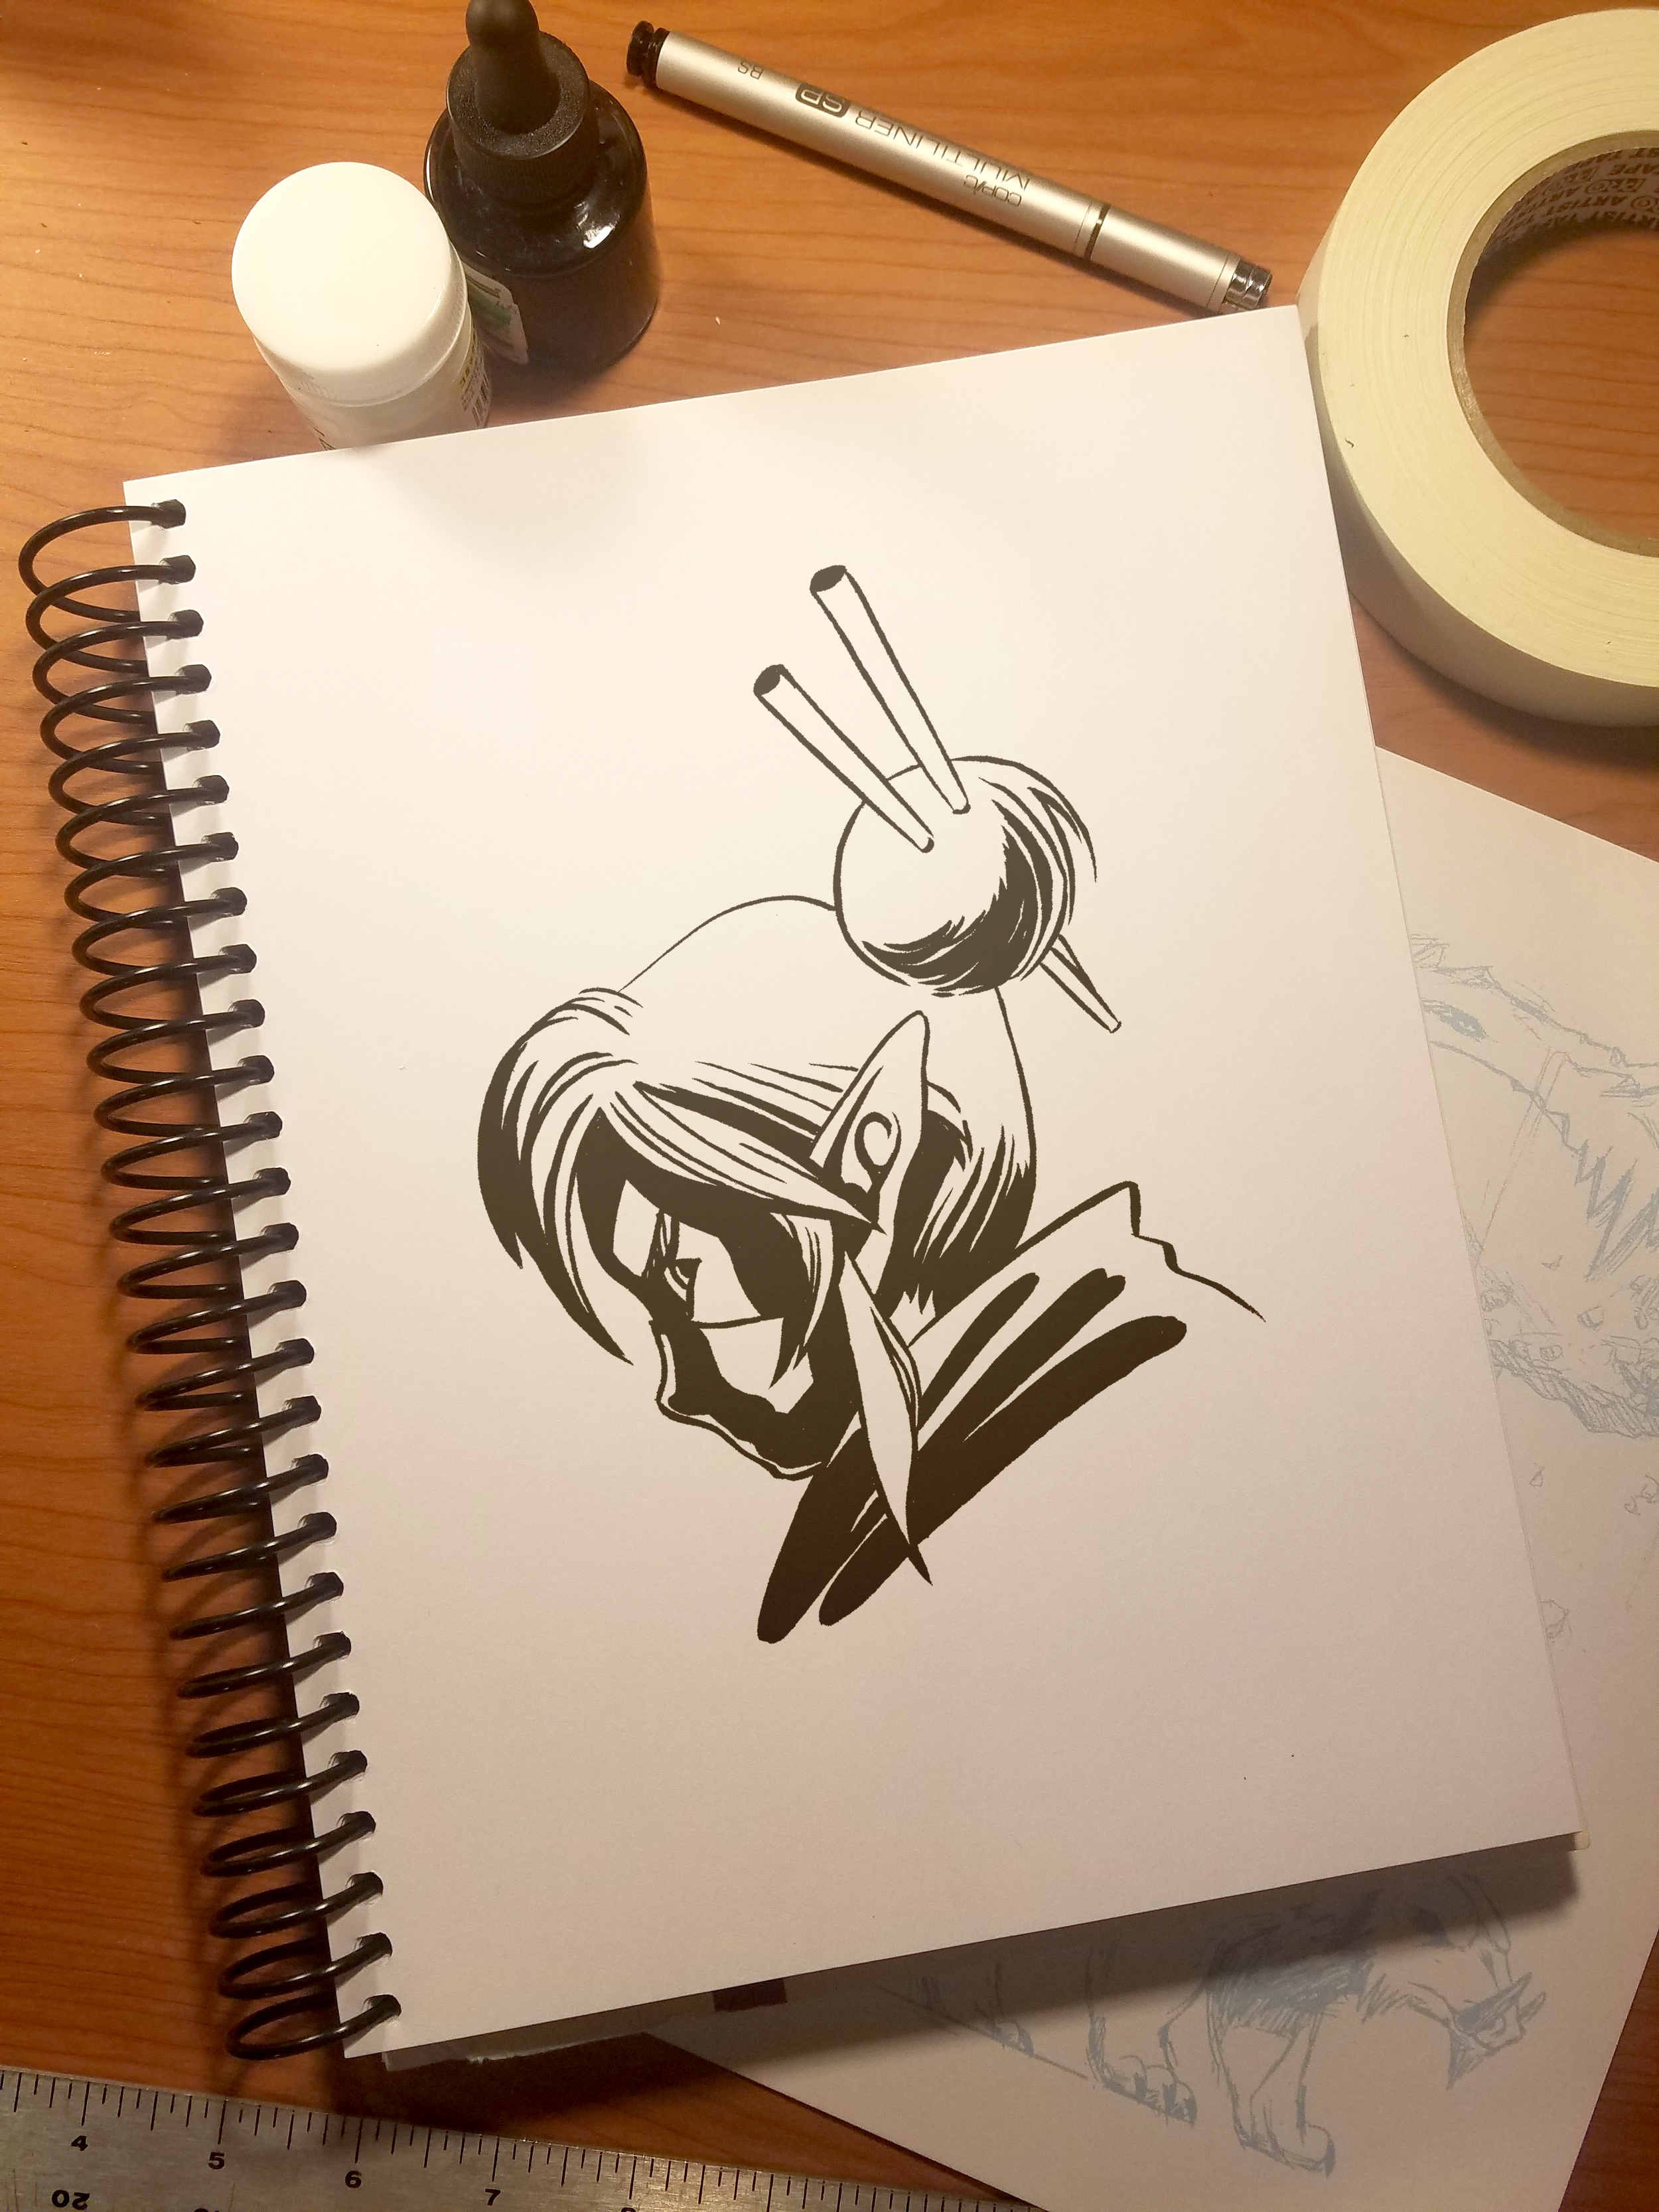 Linktober_2017_08_Mask_Sketchbook.png